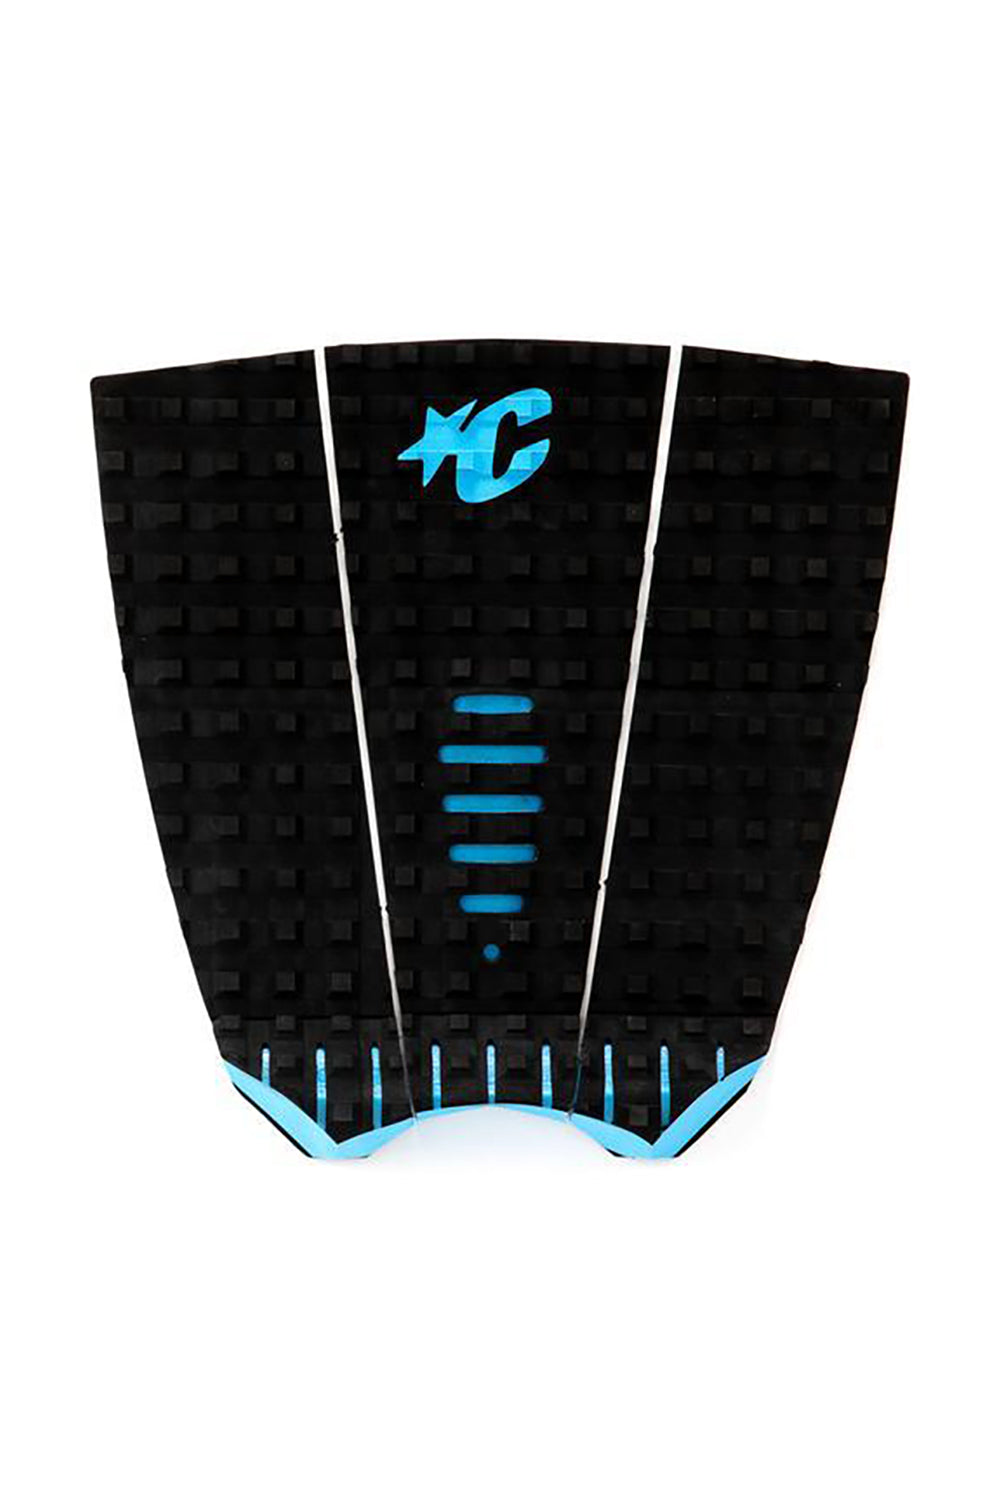 Creatures of Leisure Mick Fanning Performance Traction Tail Pad